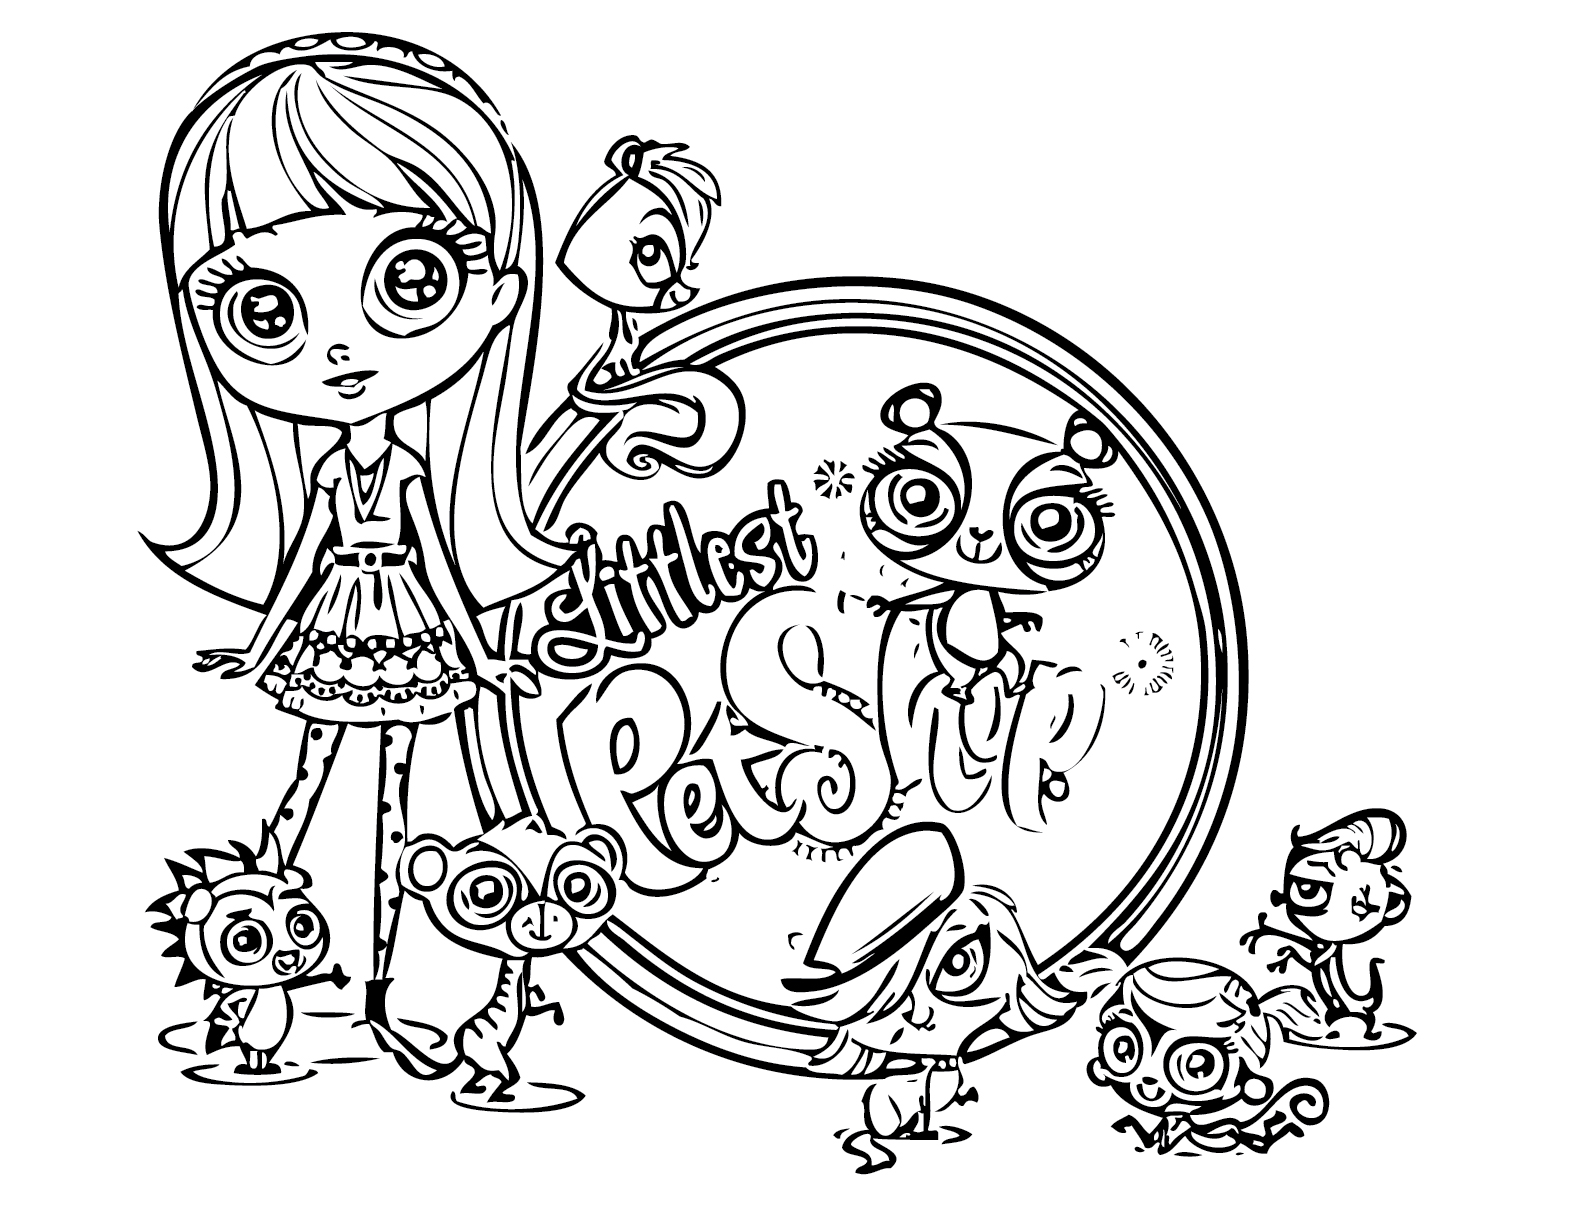 Coloring Pages For Free Online